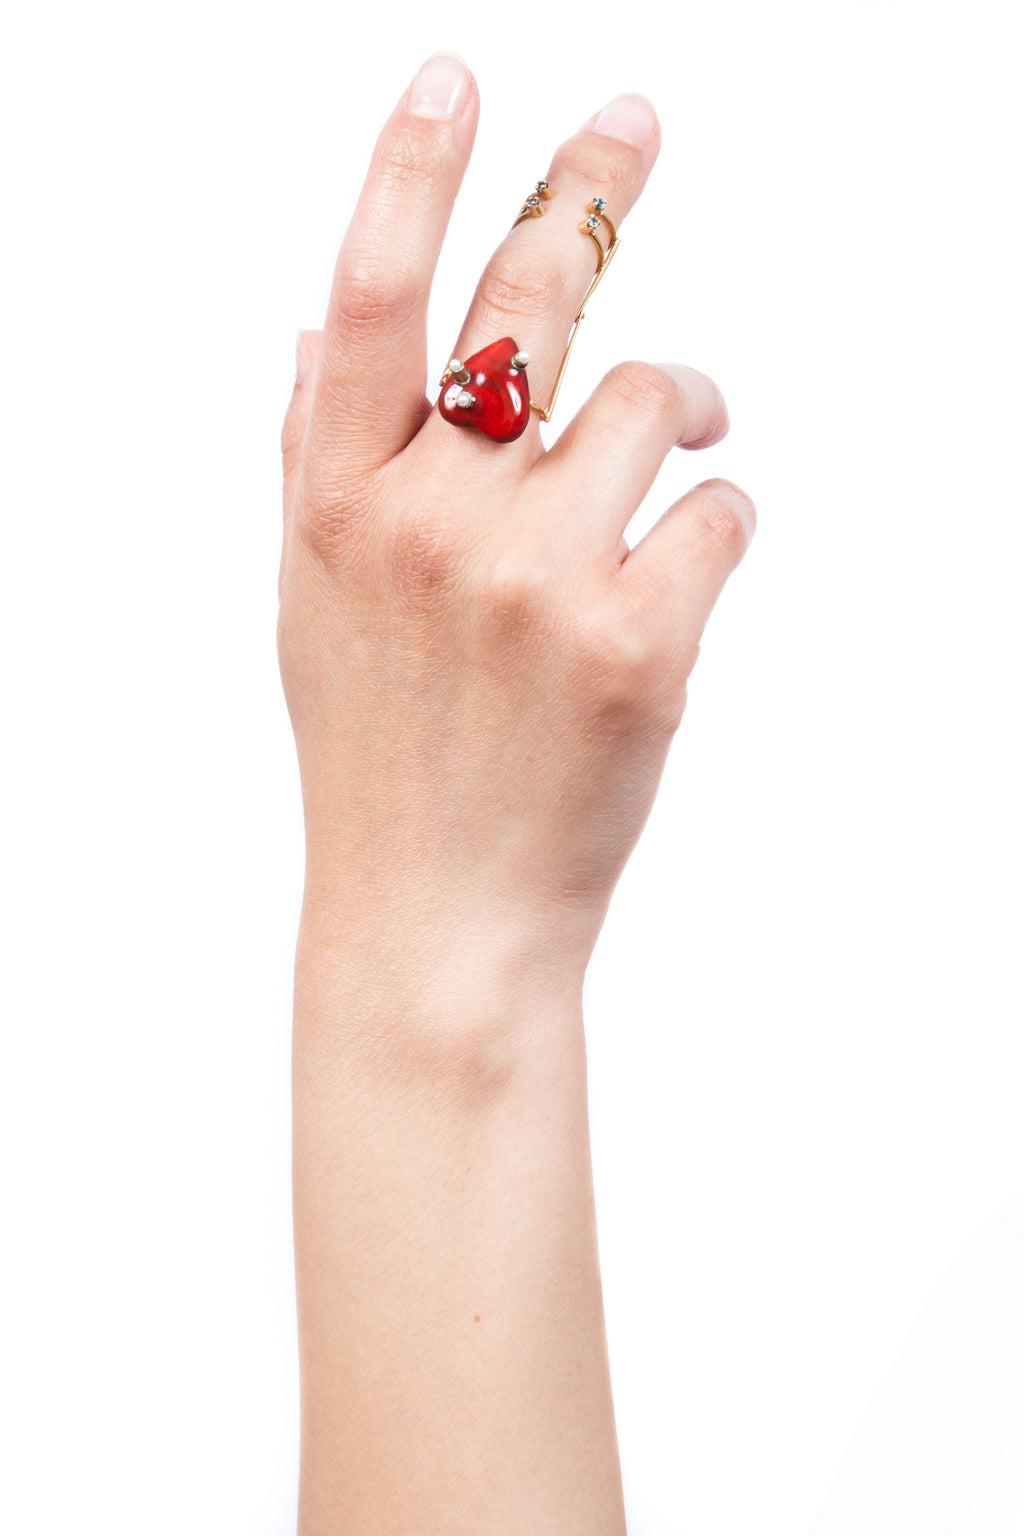 Iris Trends Heart Articulated Ring by Beatriz Palacios Spain